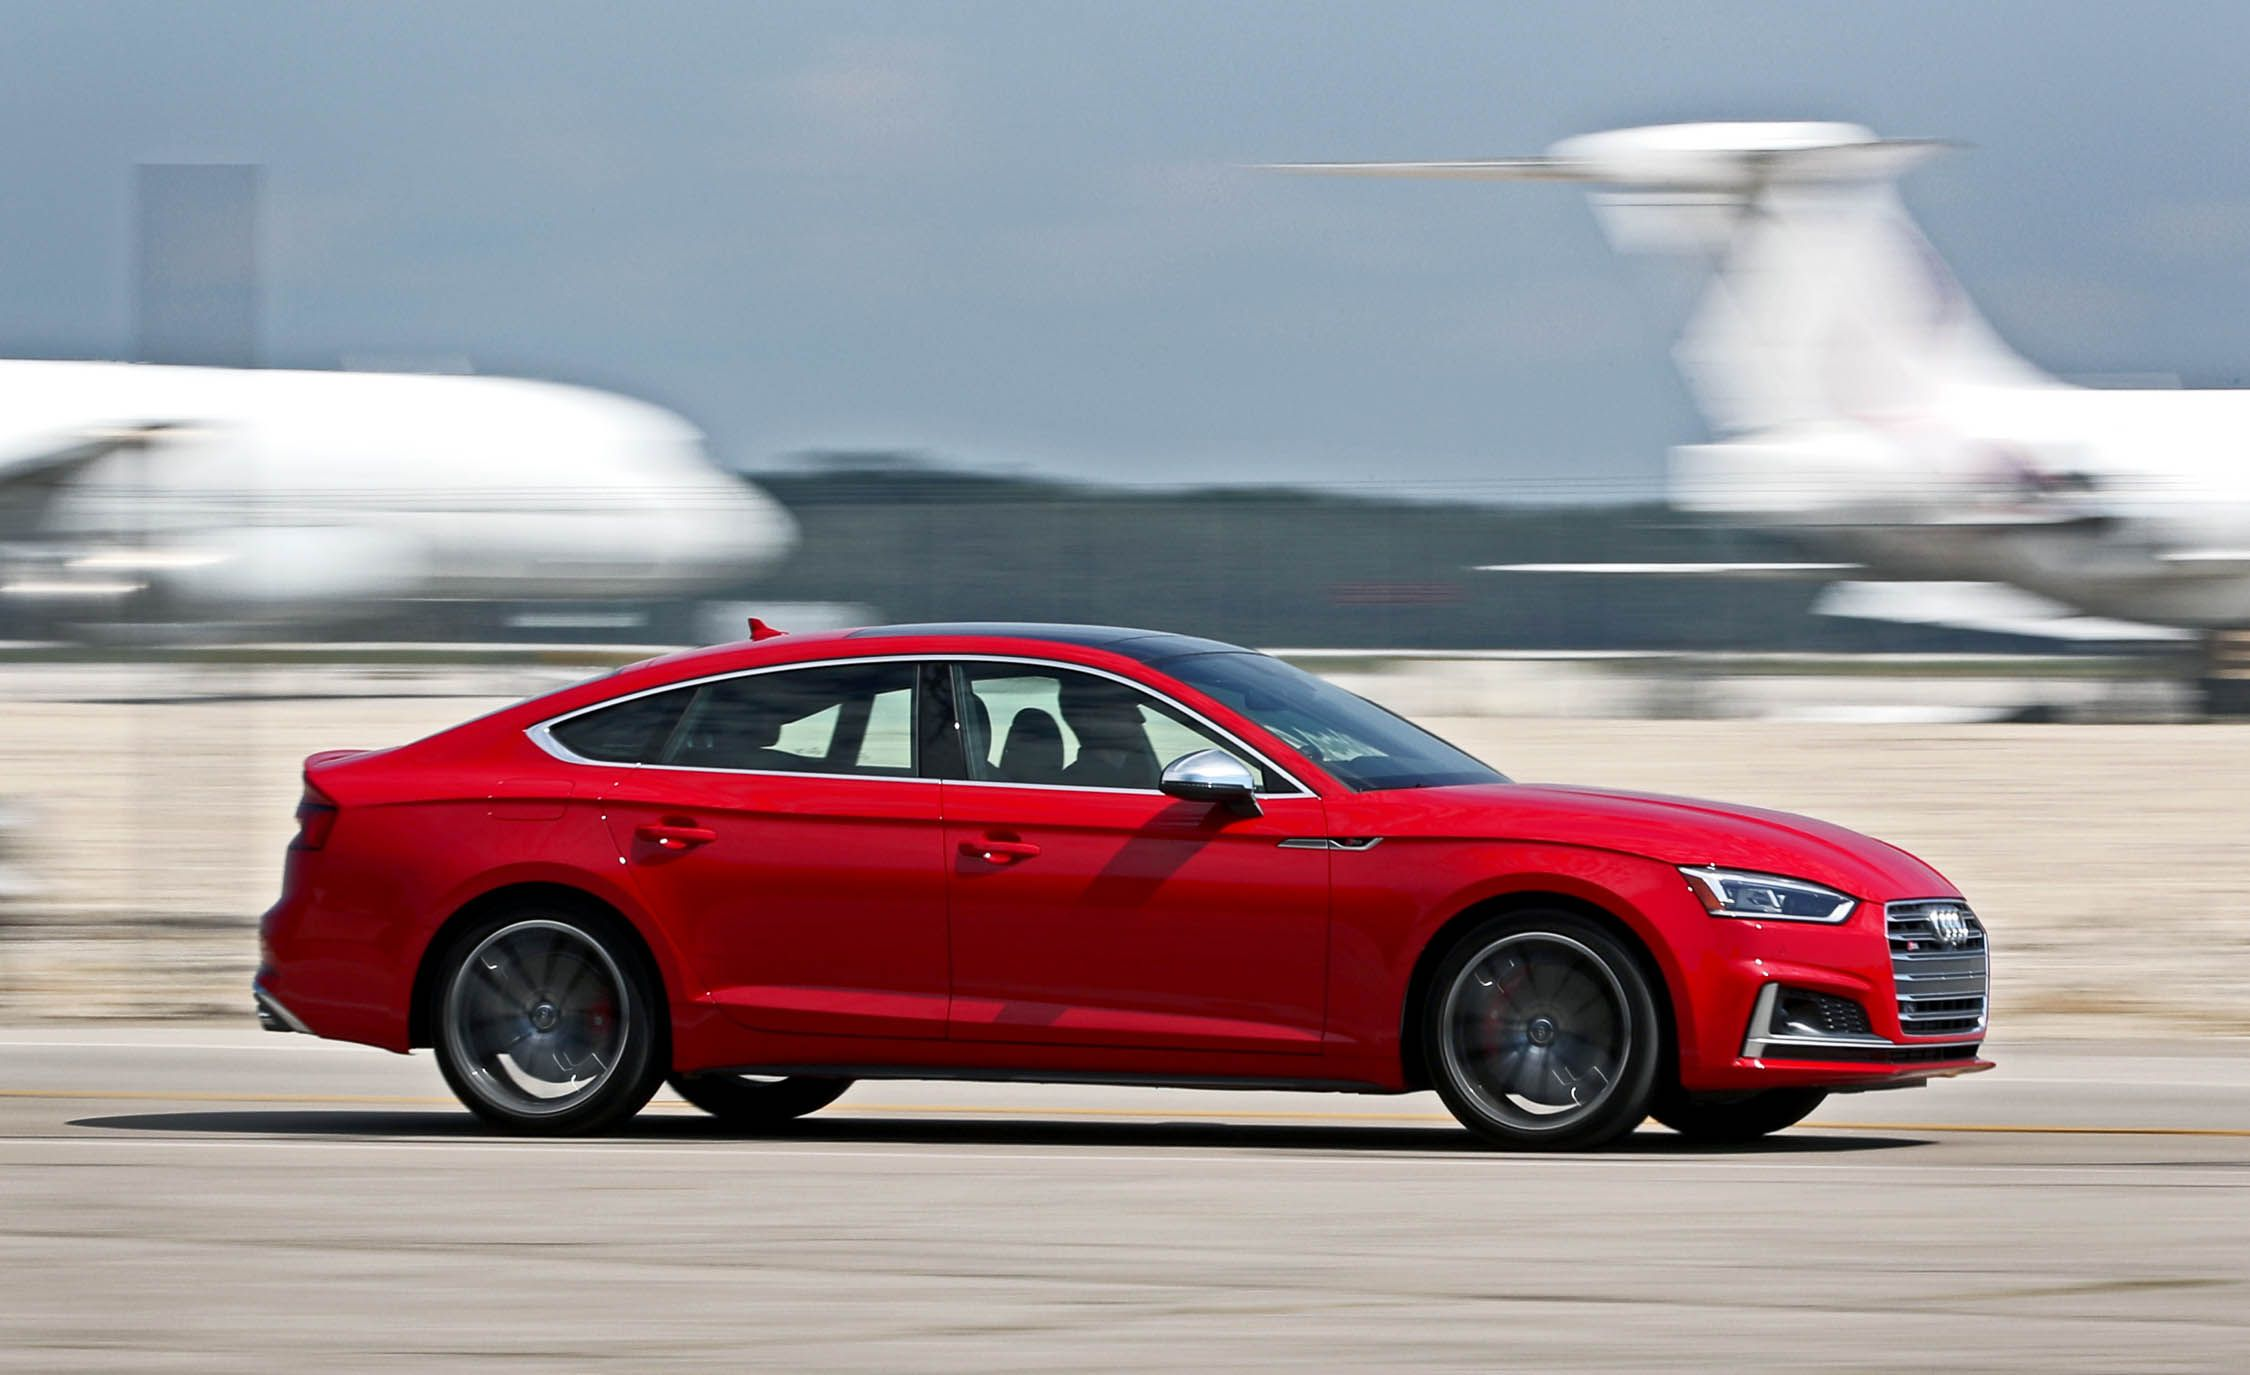 2018 Audi S5 Sportback | Fuel Economy Review | Car and Driver